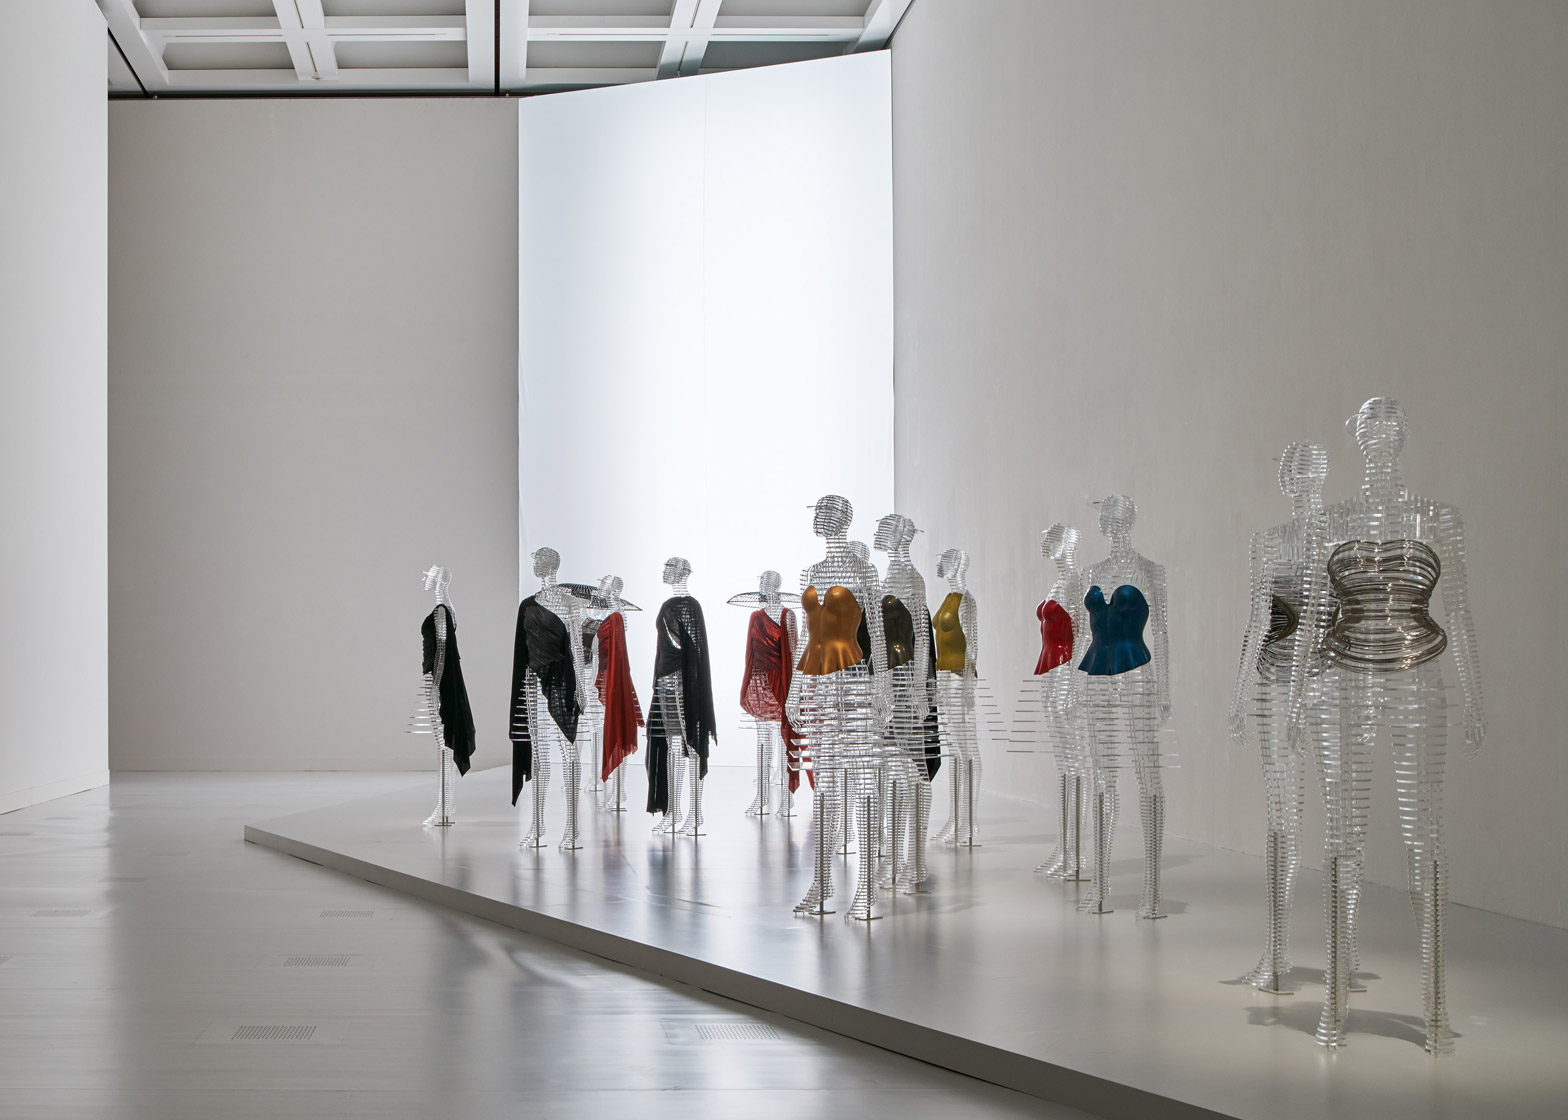 Tokyo's Issey Miyake retrospective is now open to the public